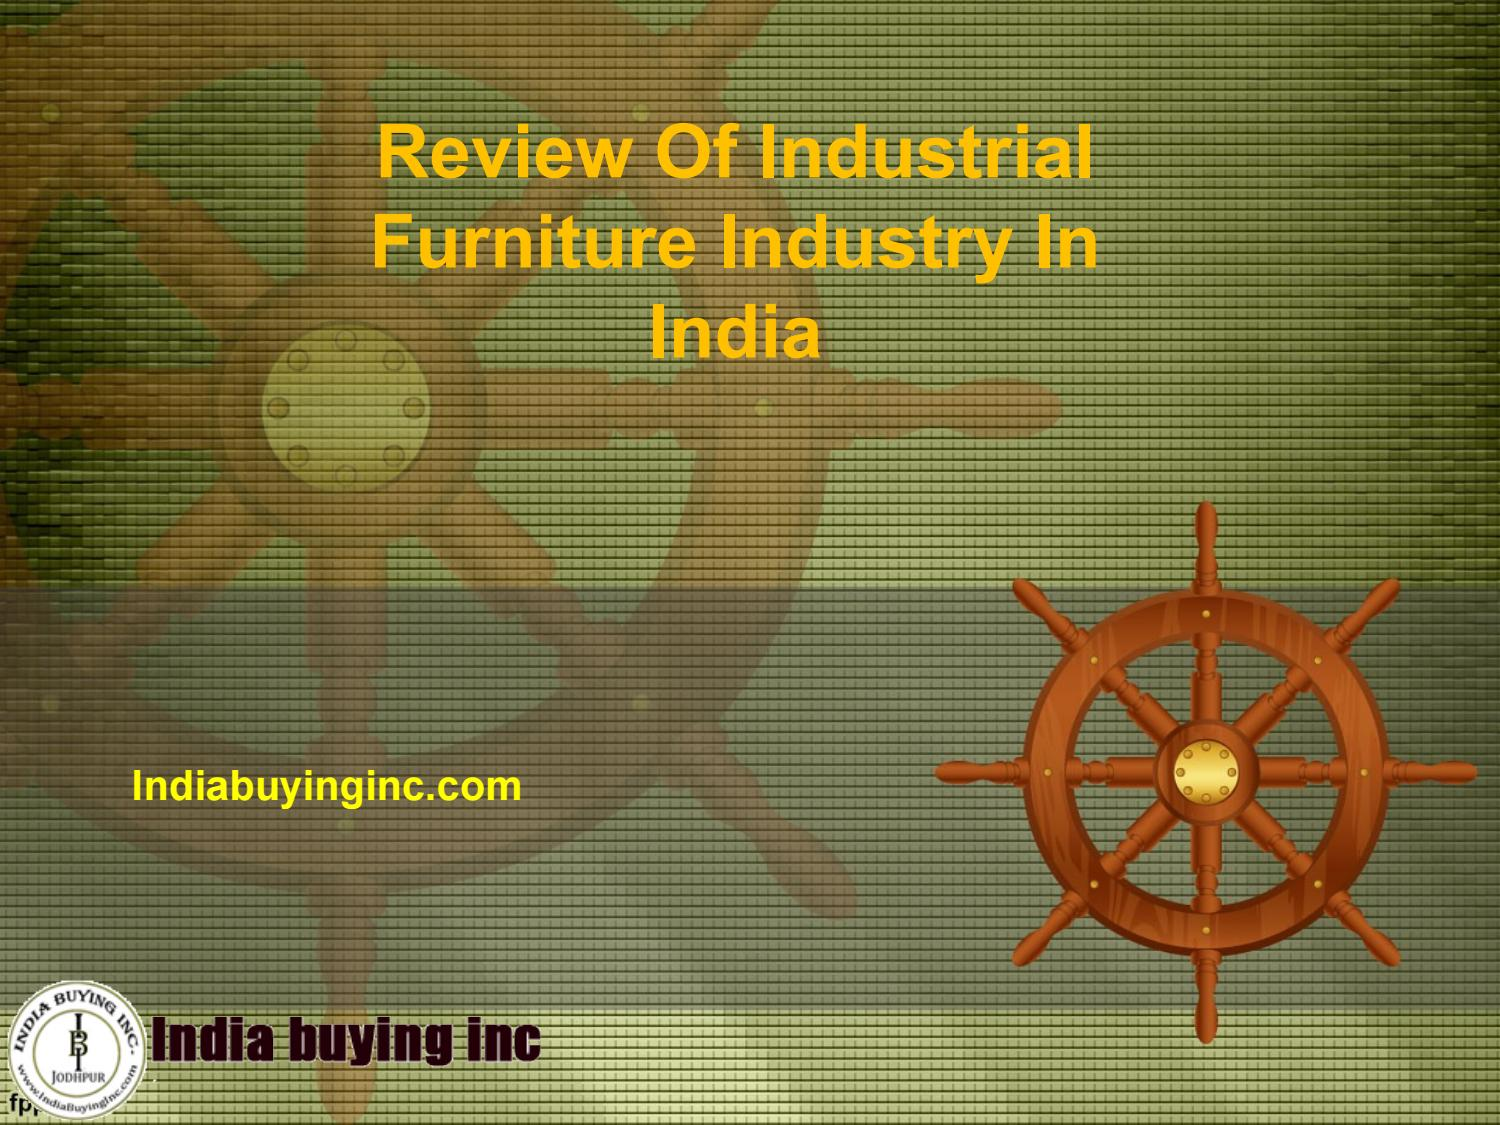 Review Of Industrial Furniture Industry India By India Buying Inc